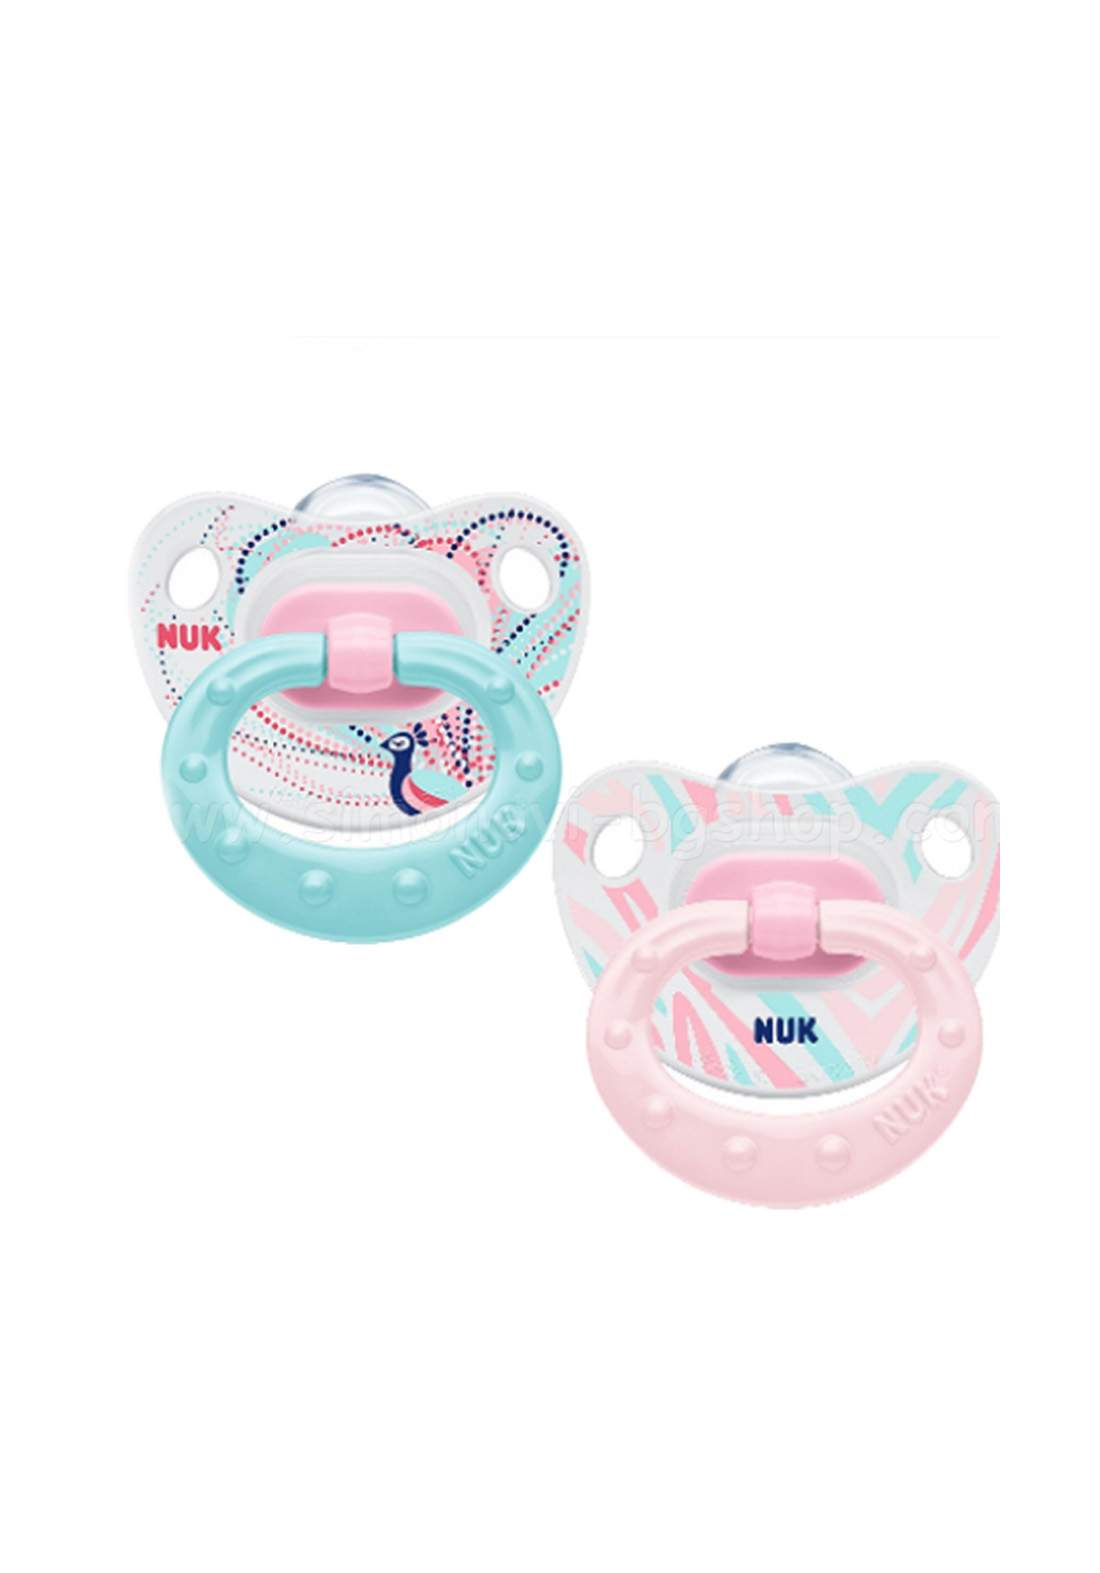 Nuk Classic Silicone Soothe Happy Days Pack of2   6–18 Months لهاية أطفال